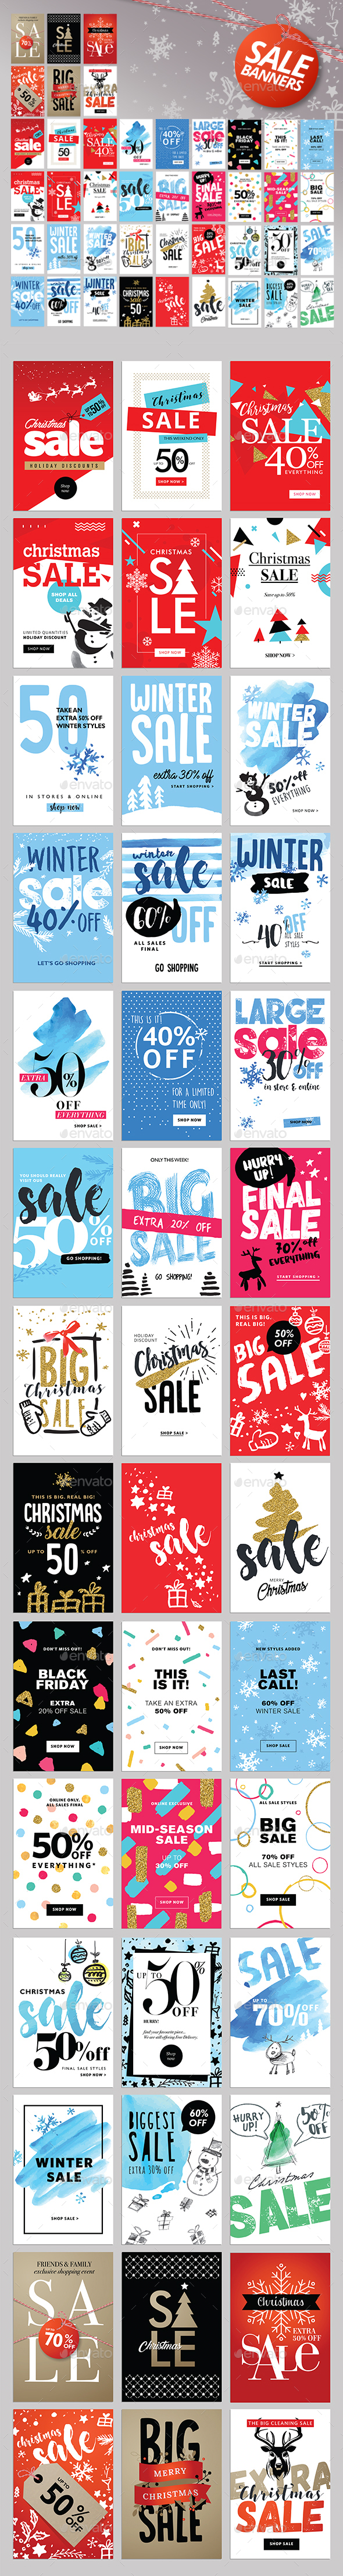 Set of Winter Mobile Sale Banners - Banners & Ads Web Elements